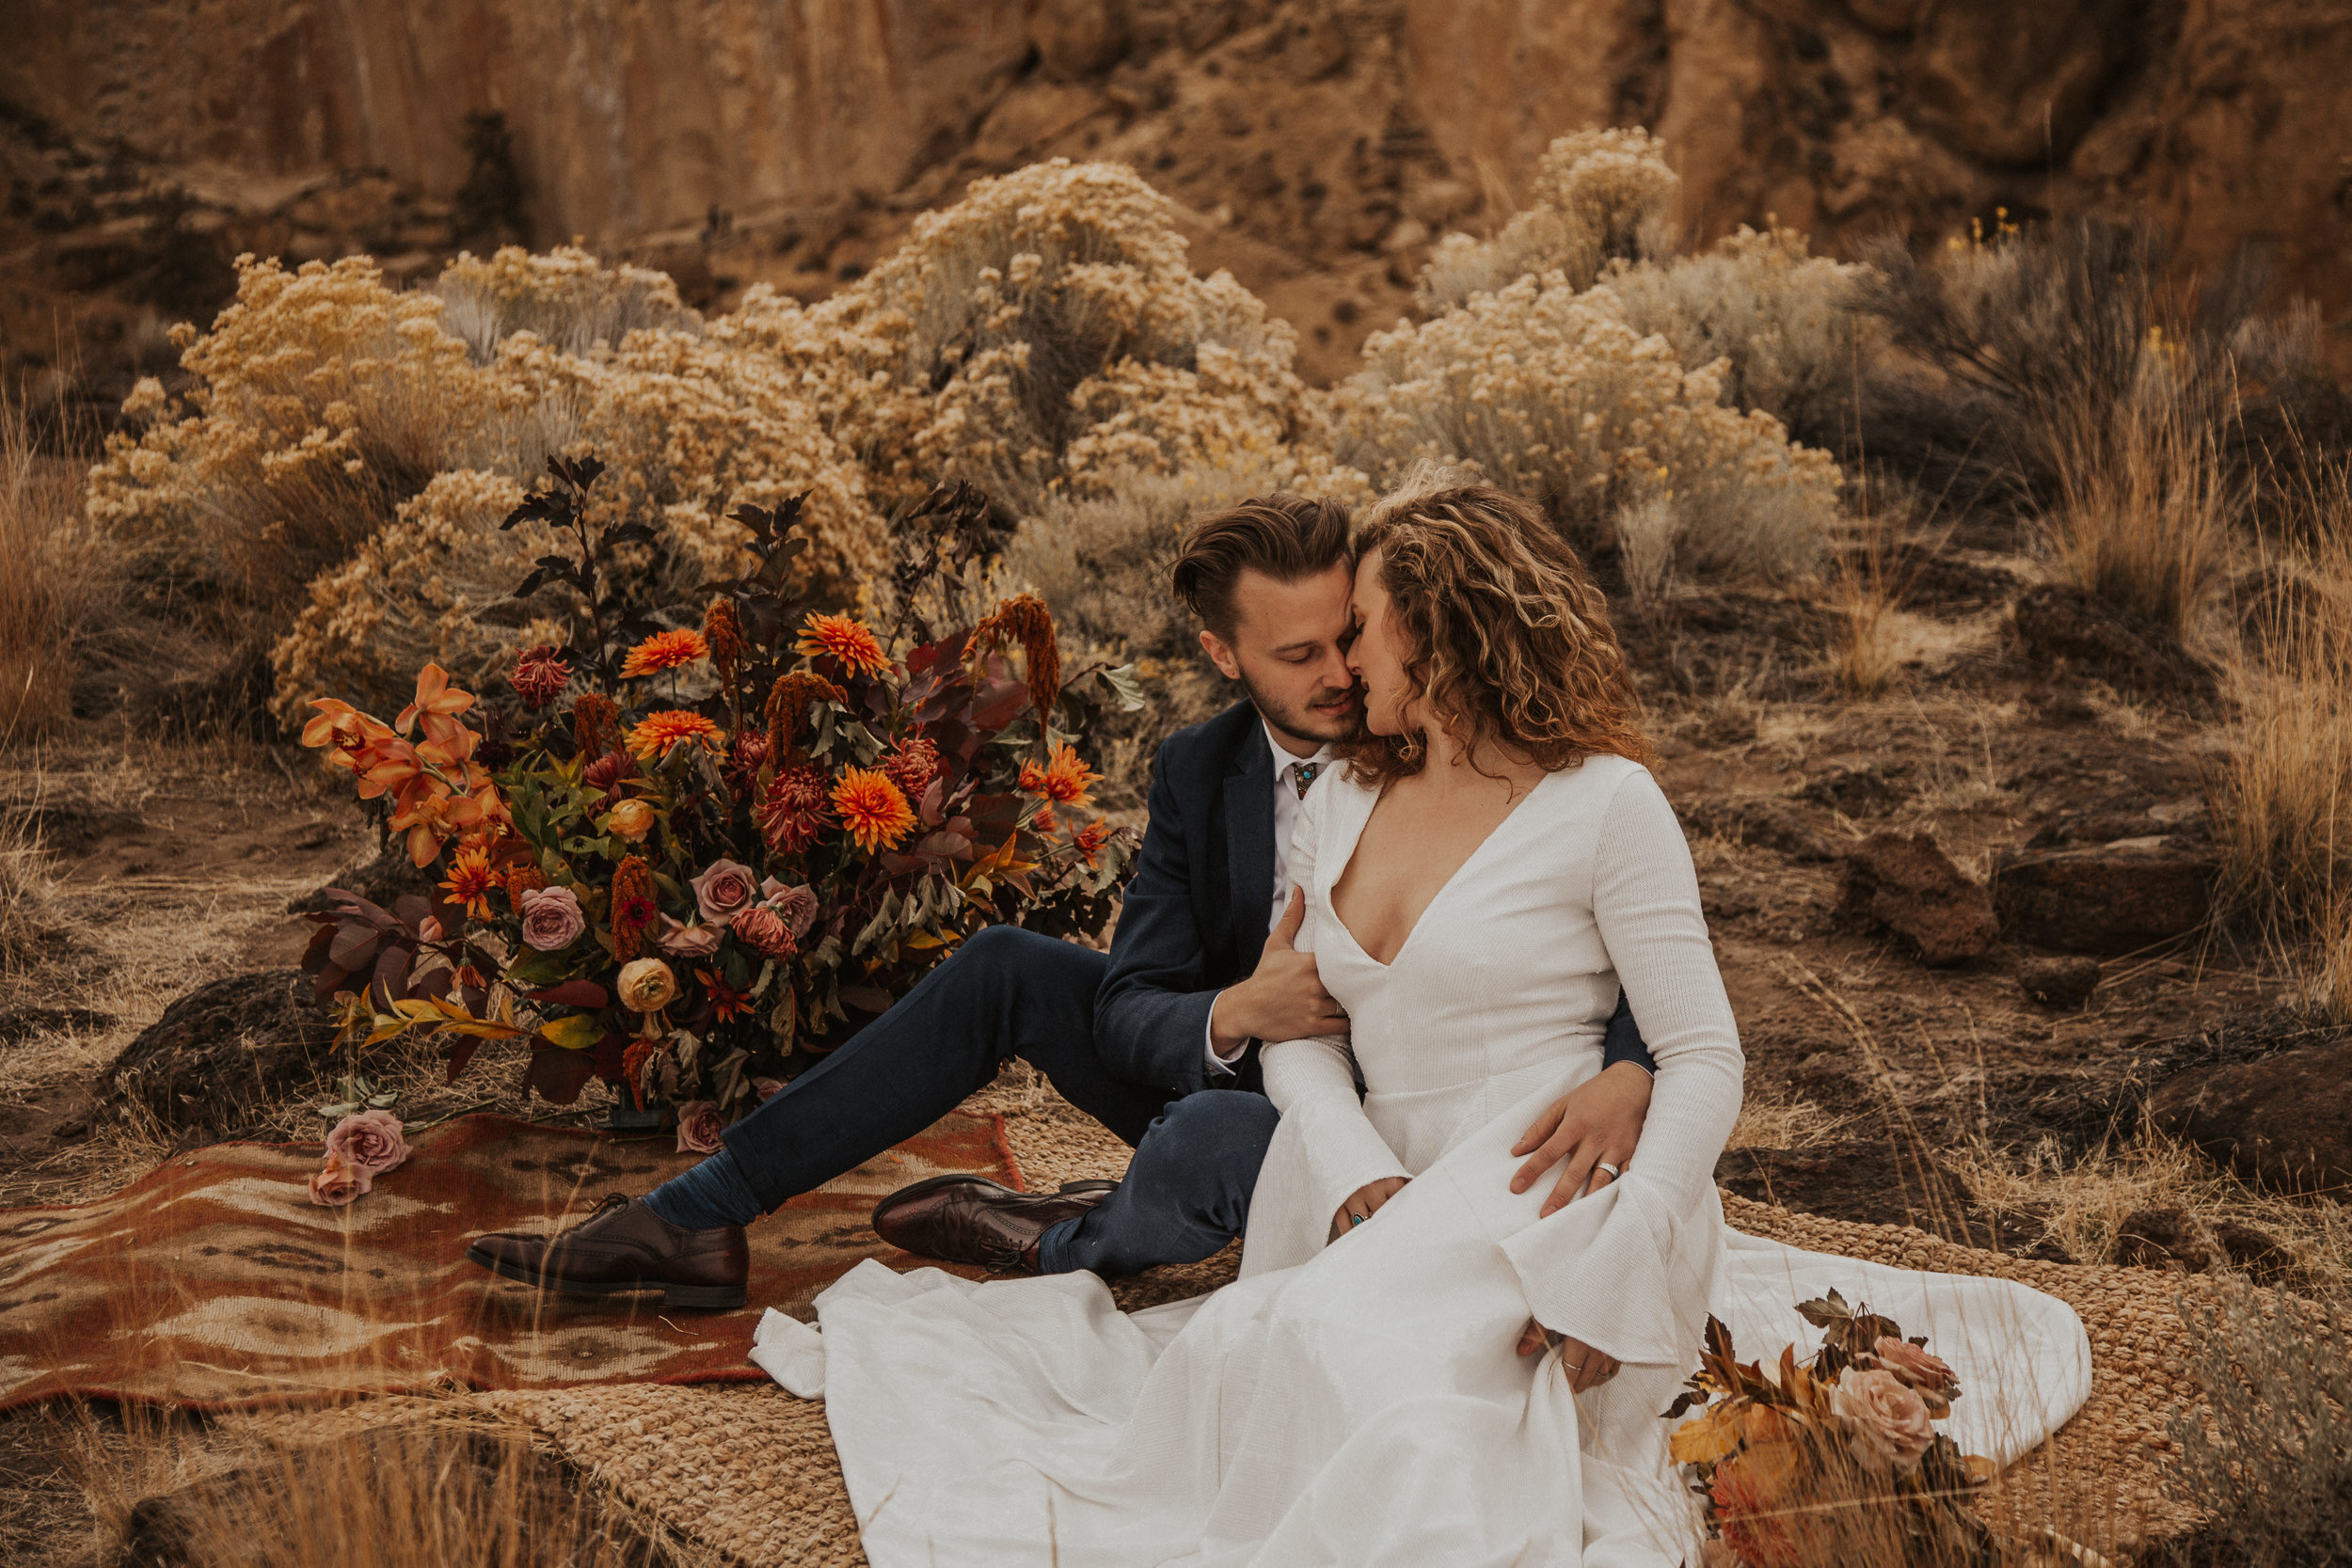 August-muse-images-smith-rock-elopement-oregon-bri-dylan-22.jpg